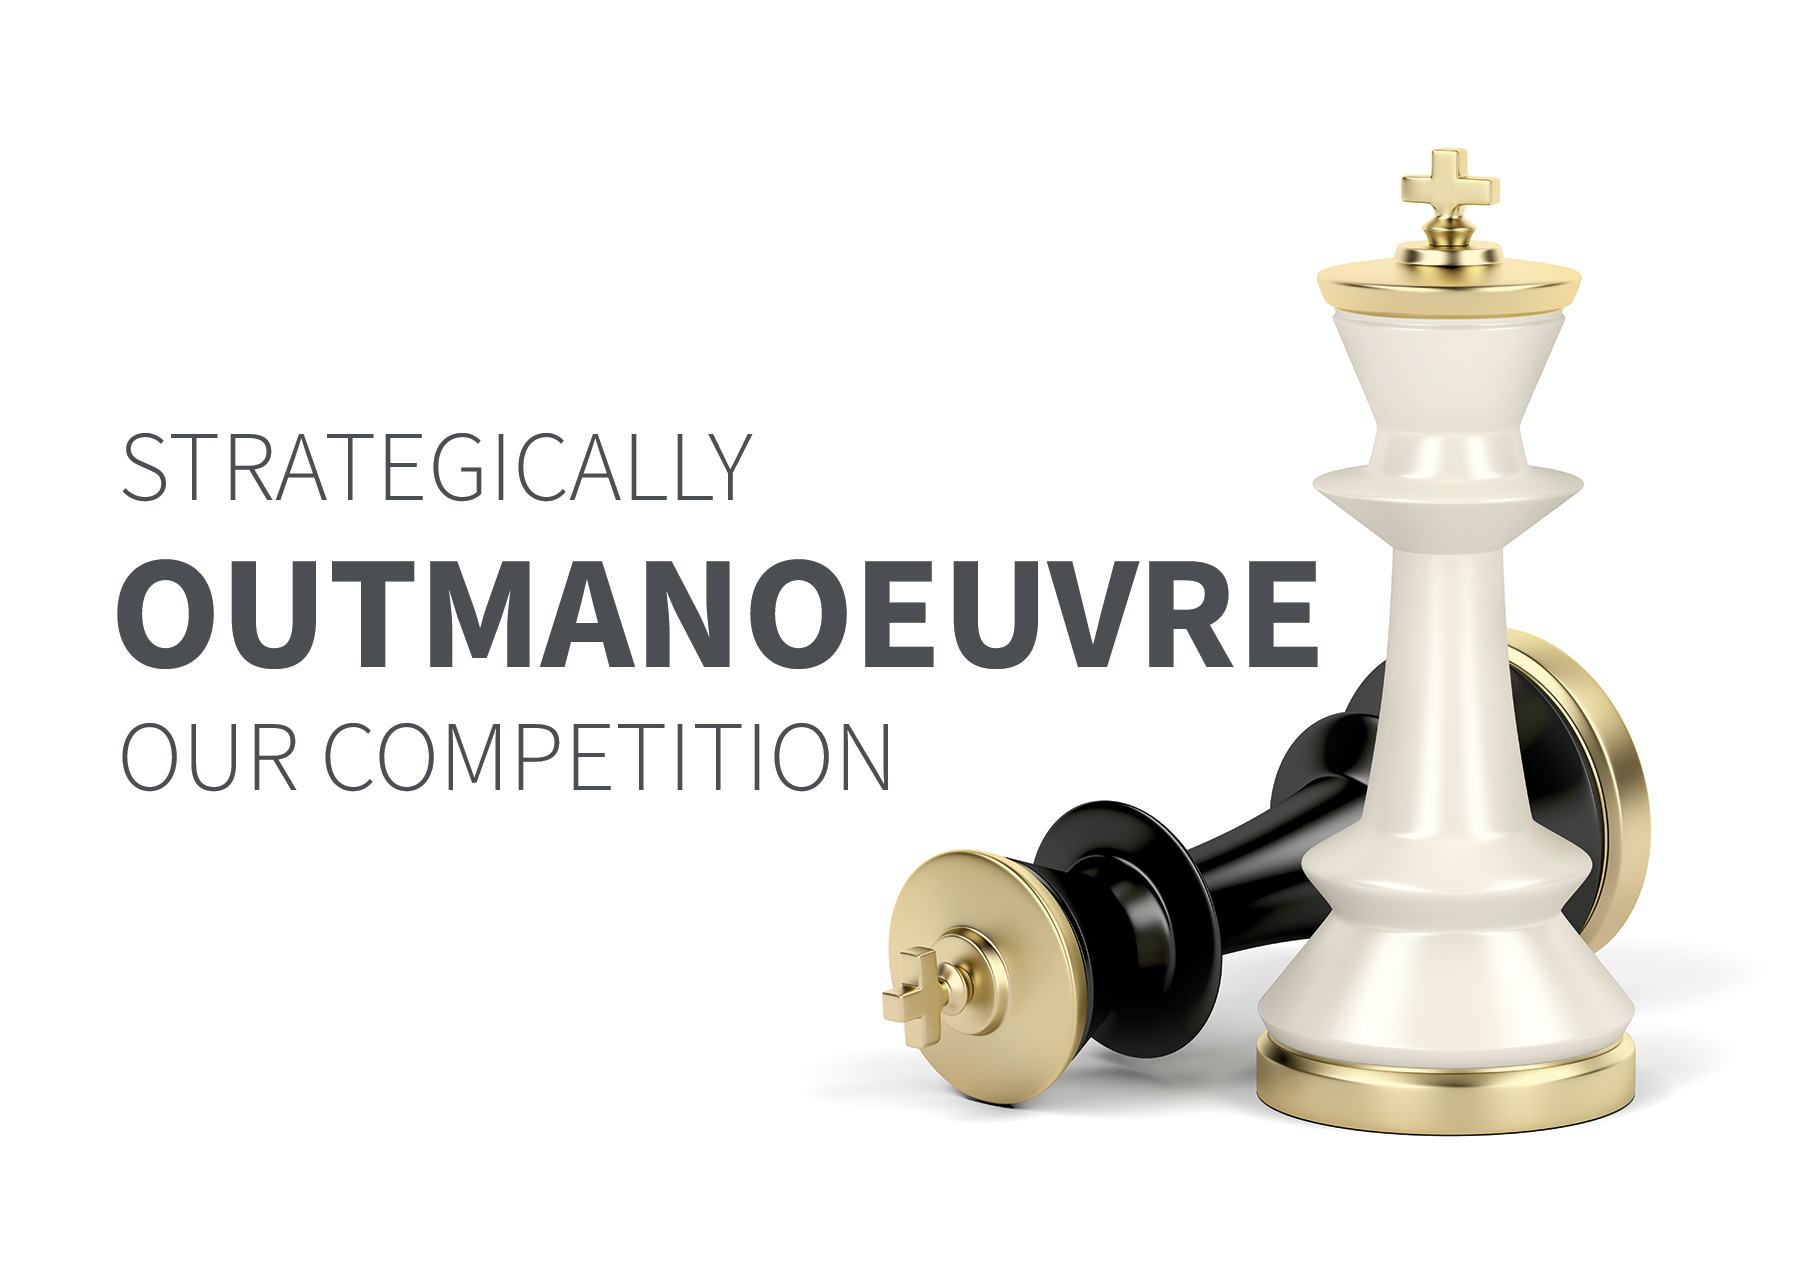 Outcome 5 - Outmanoeuvre